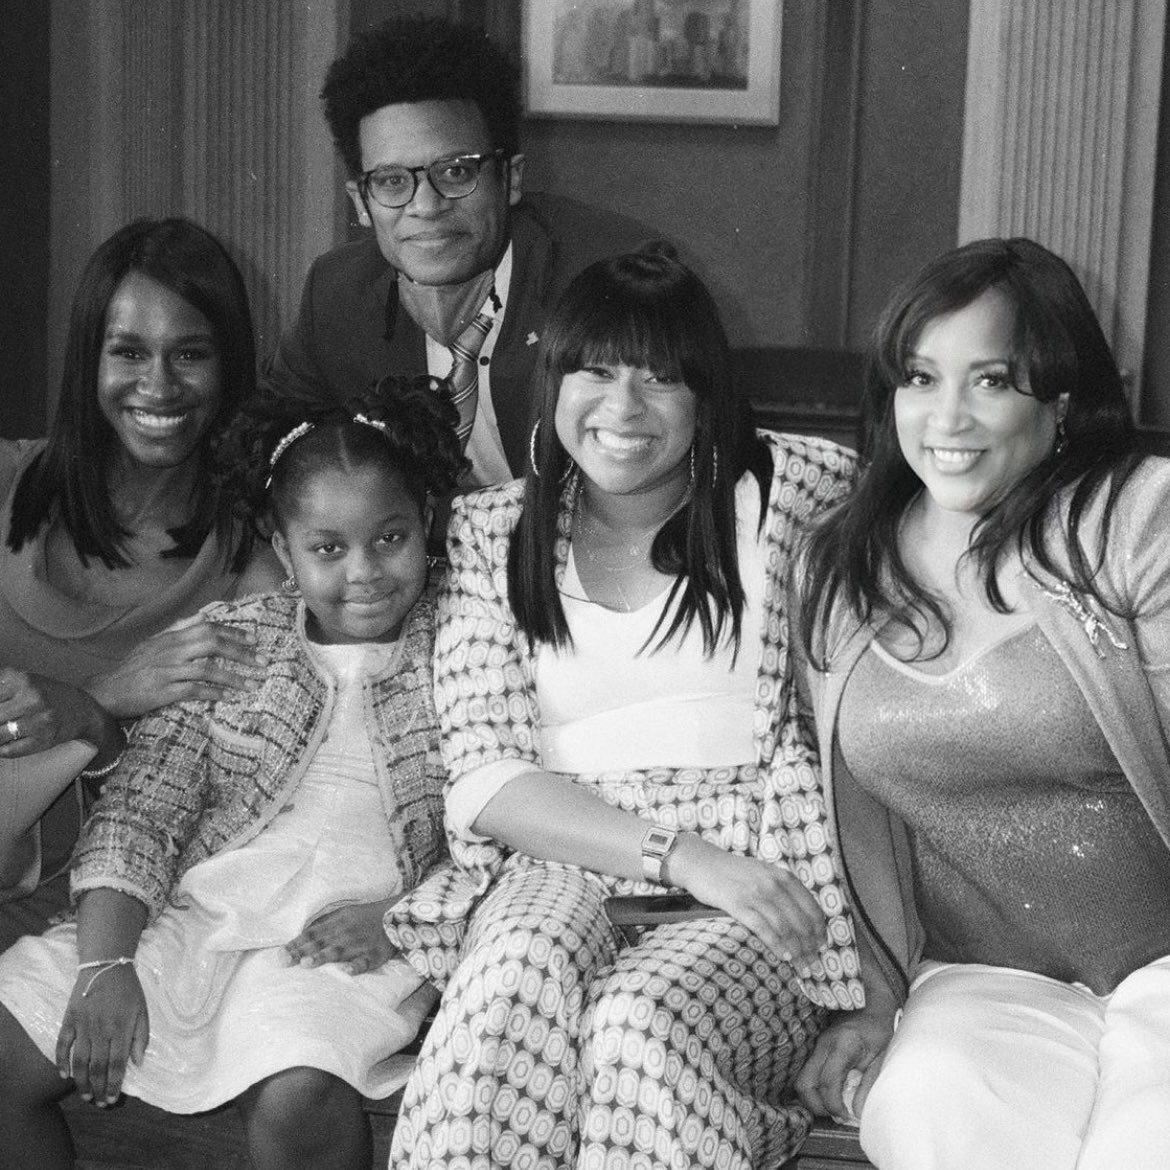 Awesome Jackee Harry And Kym Whitley Net Worth wallpapers to download for free greenvirals